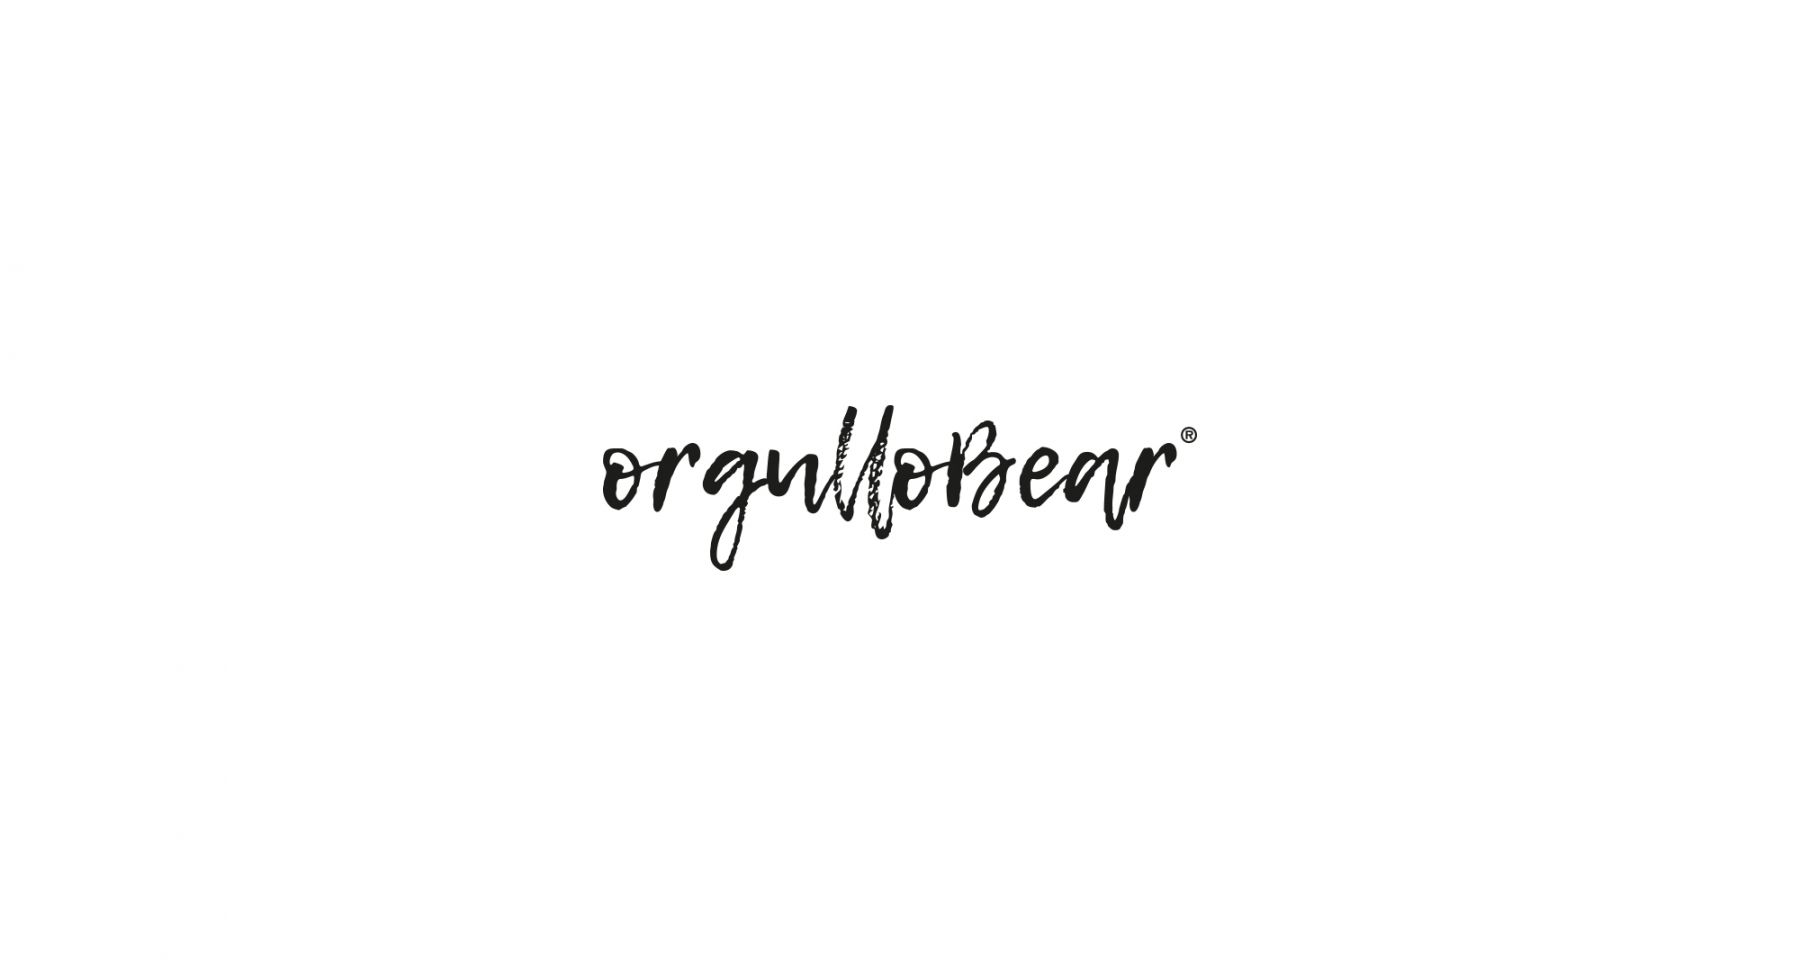 orgullo-bear-naming-diseno-etiqueta-packaging-marketing-on-line